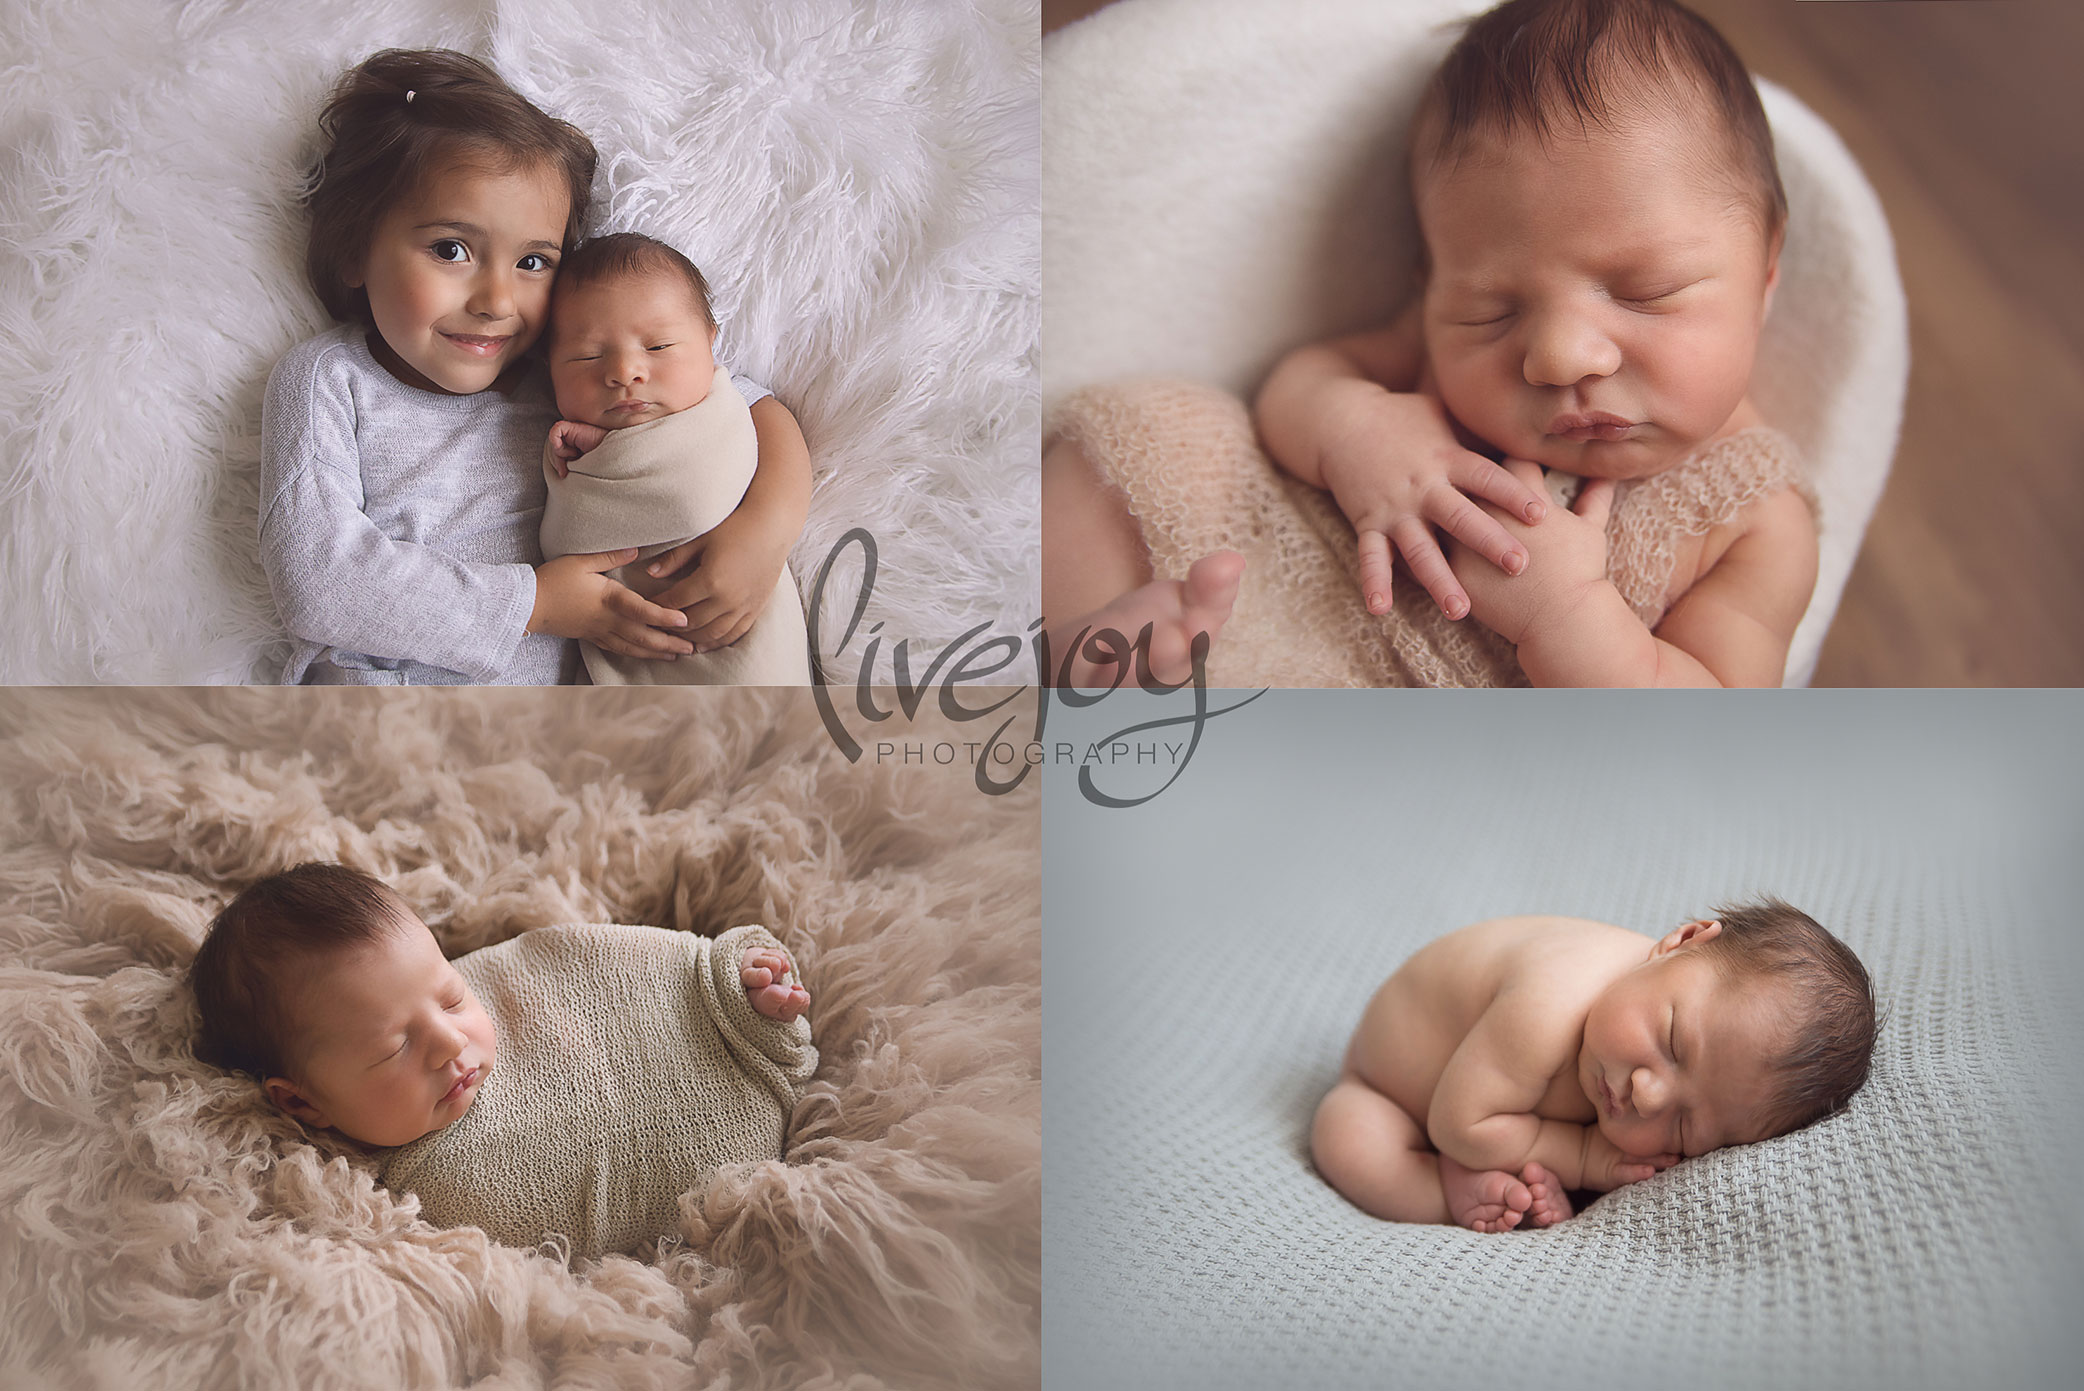 Newborn Photography | LiveJoy Photography | Oregon